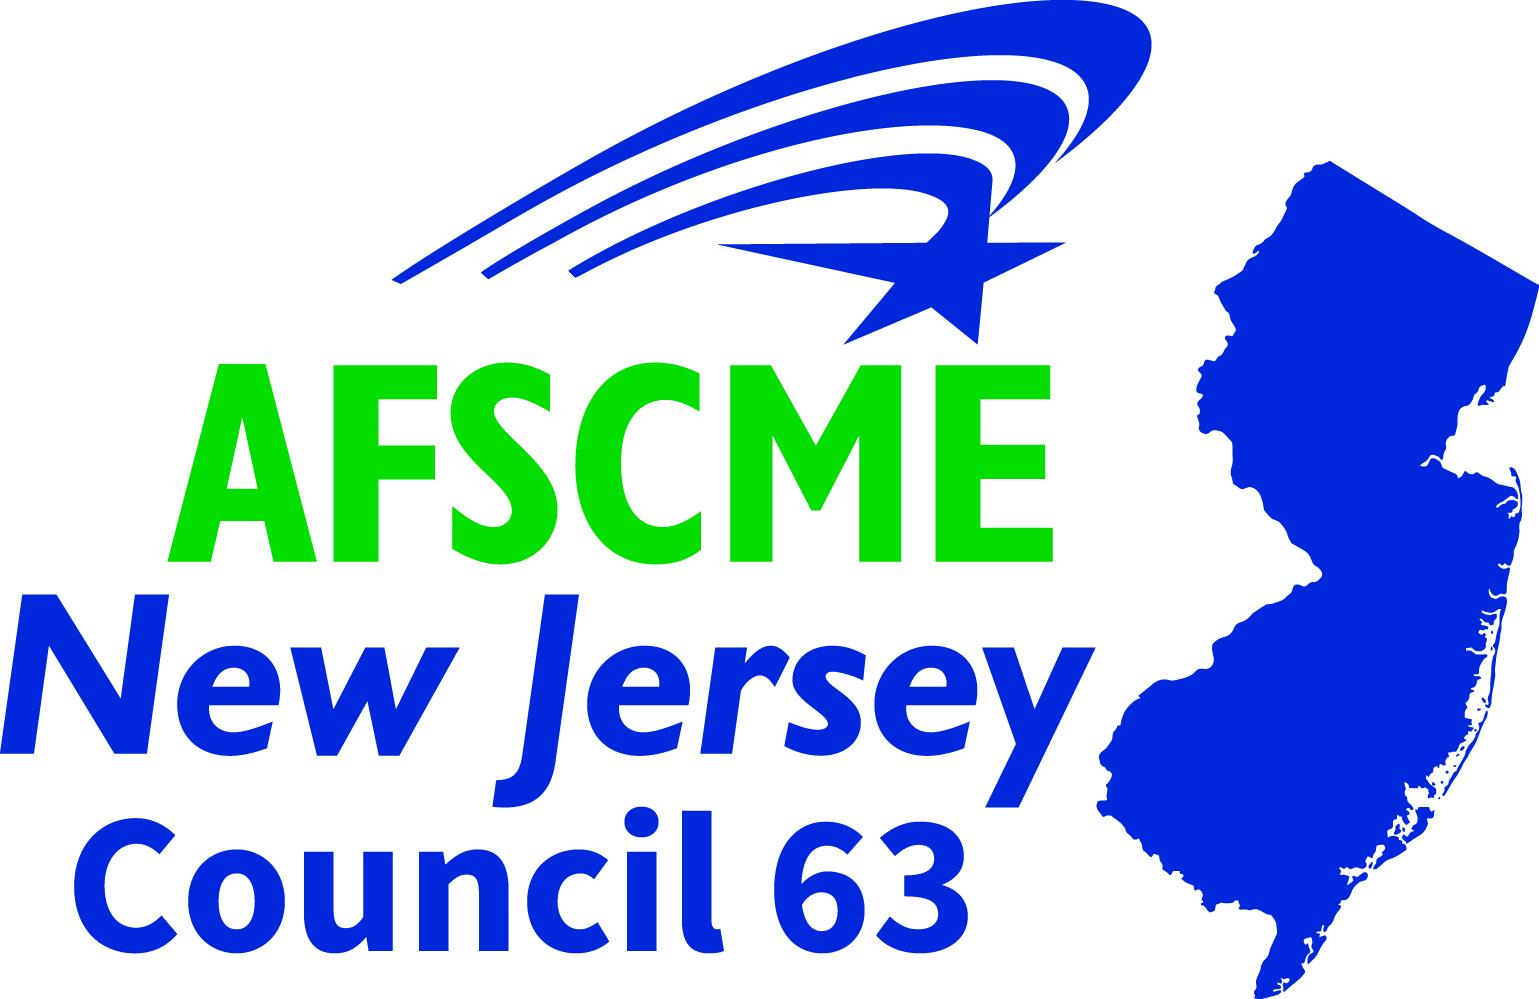 Afscme New Jersey